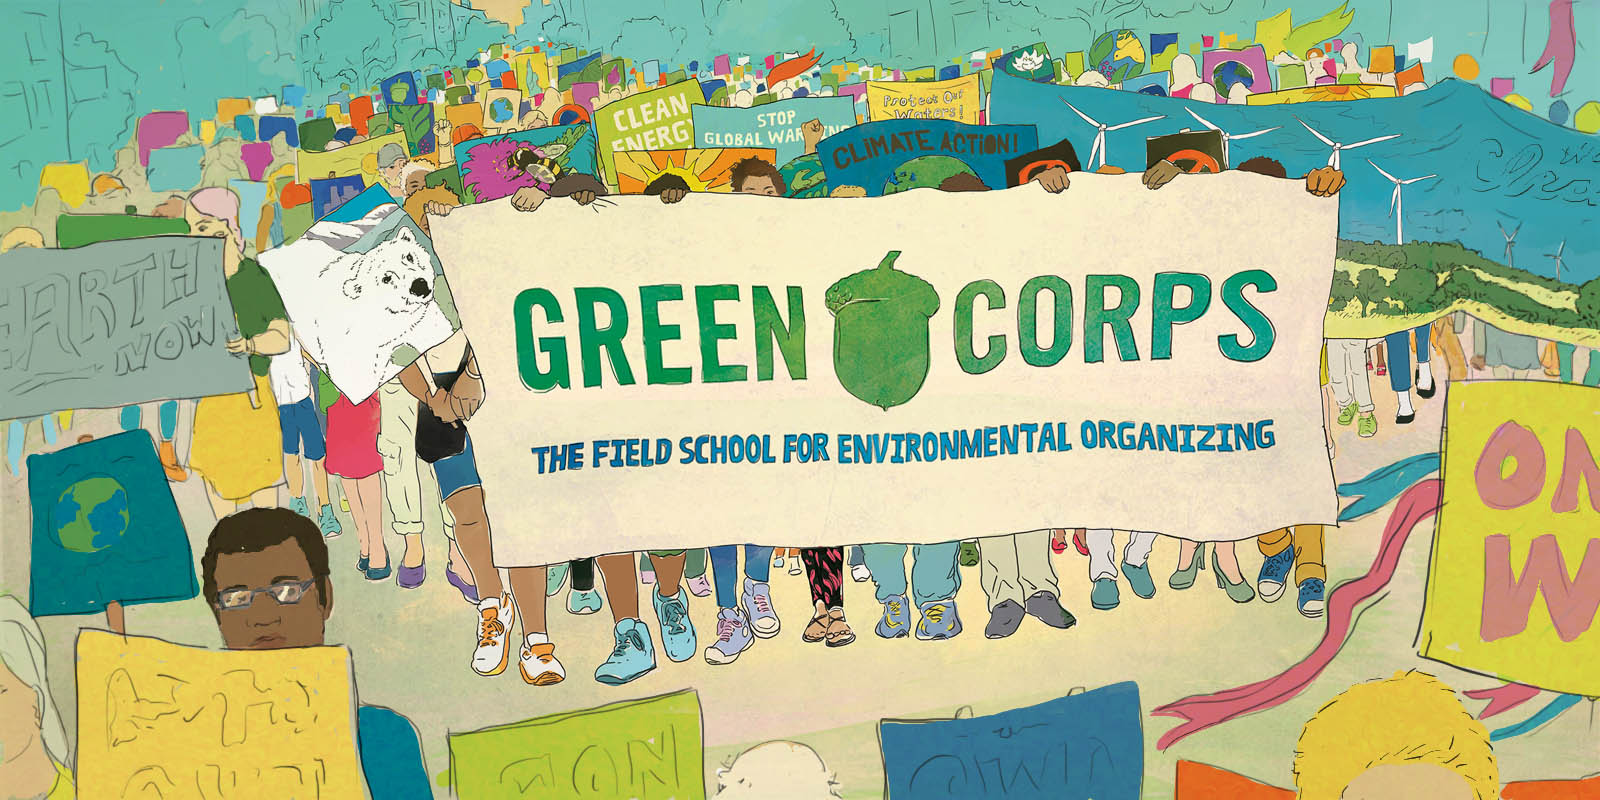 Green Corps - The Field School for Environmental Organizing